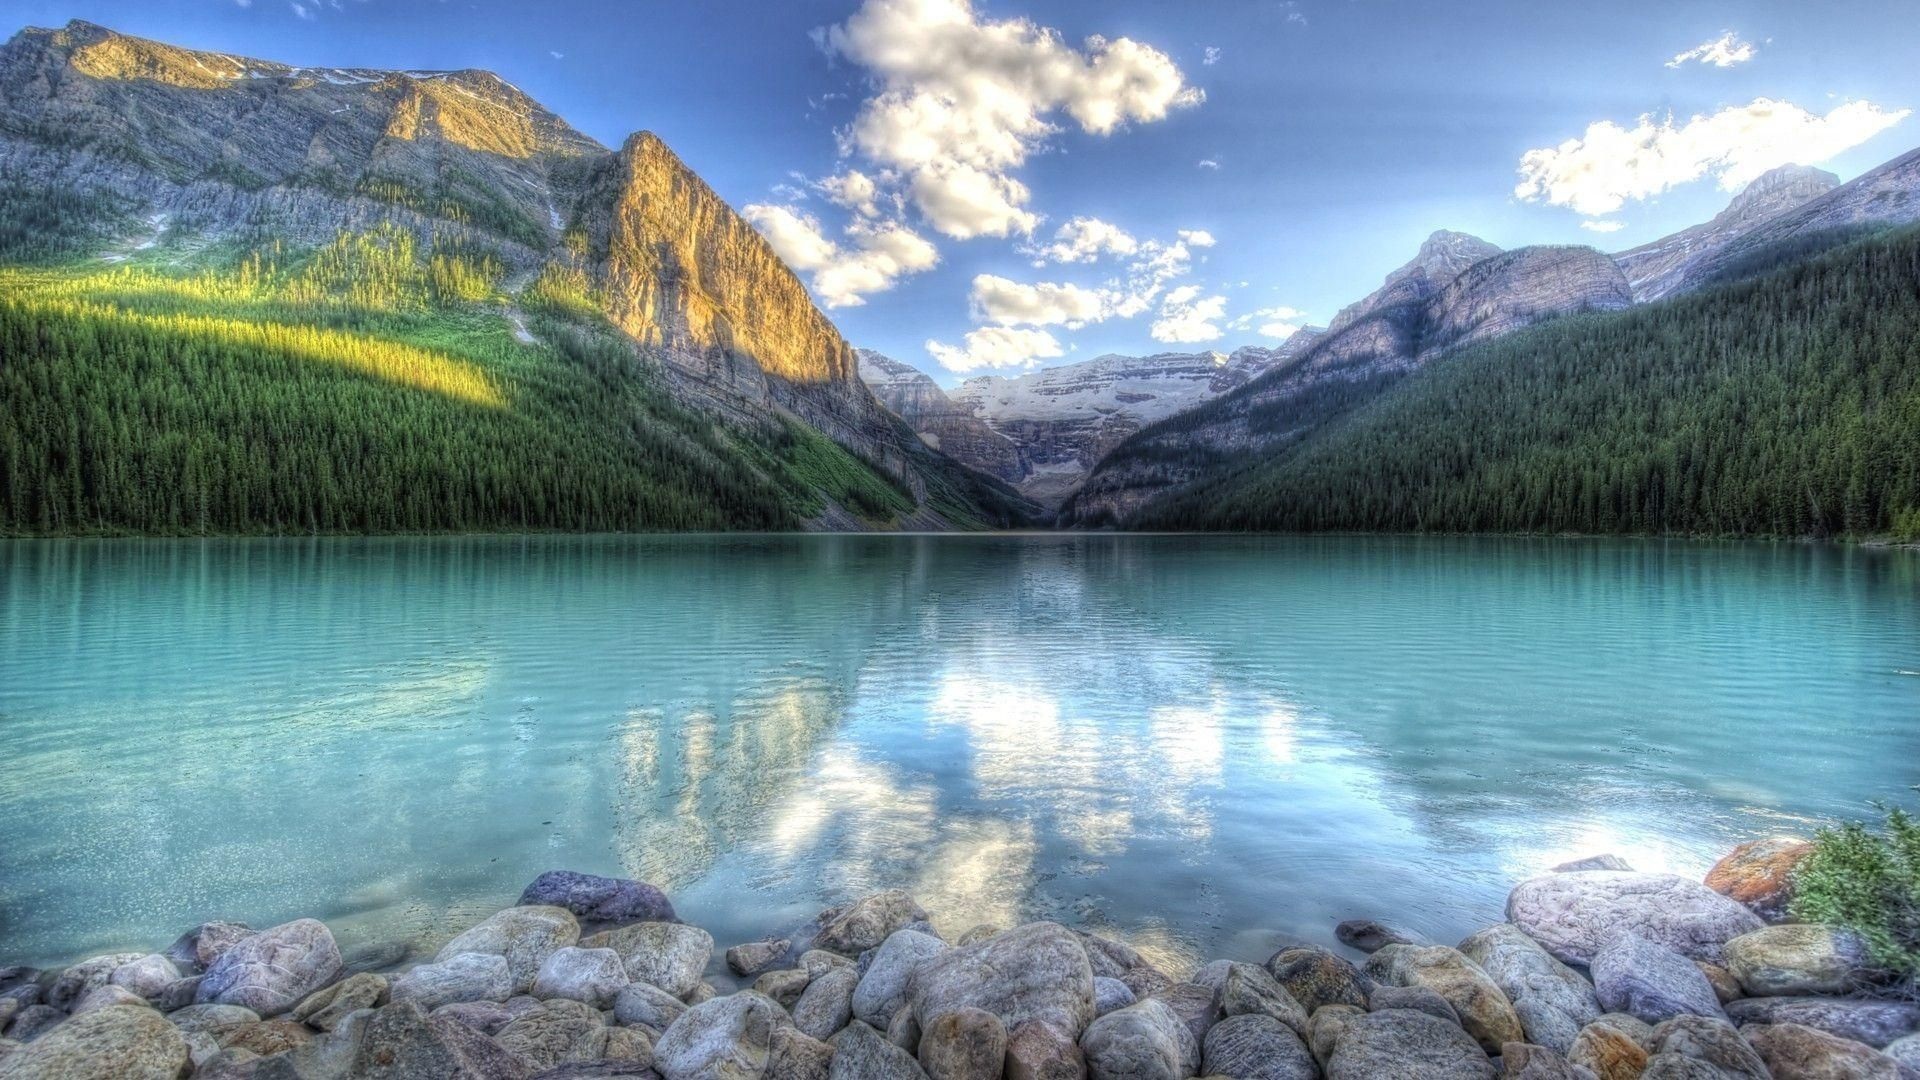 Wallpapers Of Nature High Definition 4 Hd Nature Wallpapers Beautiful Nature Wallpaper Nature Wallpaper